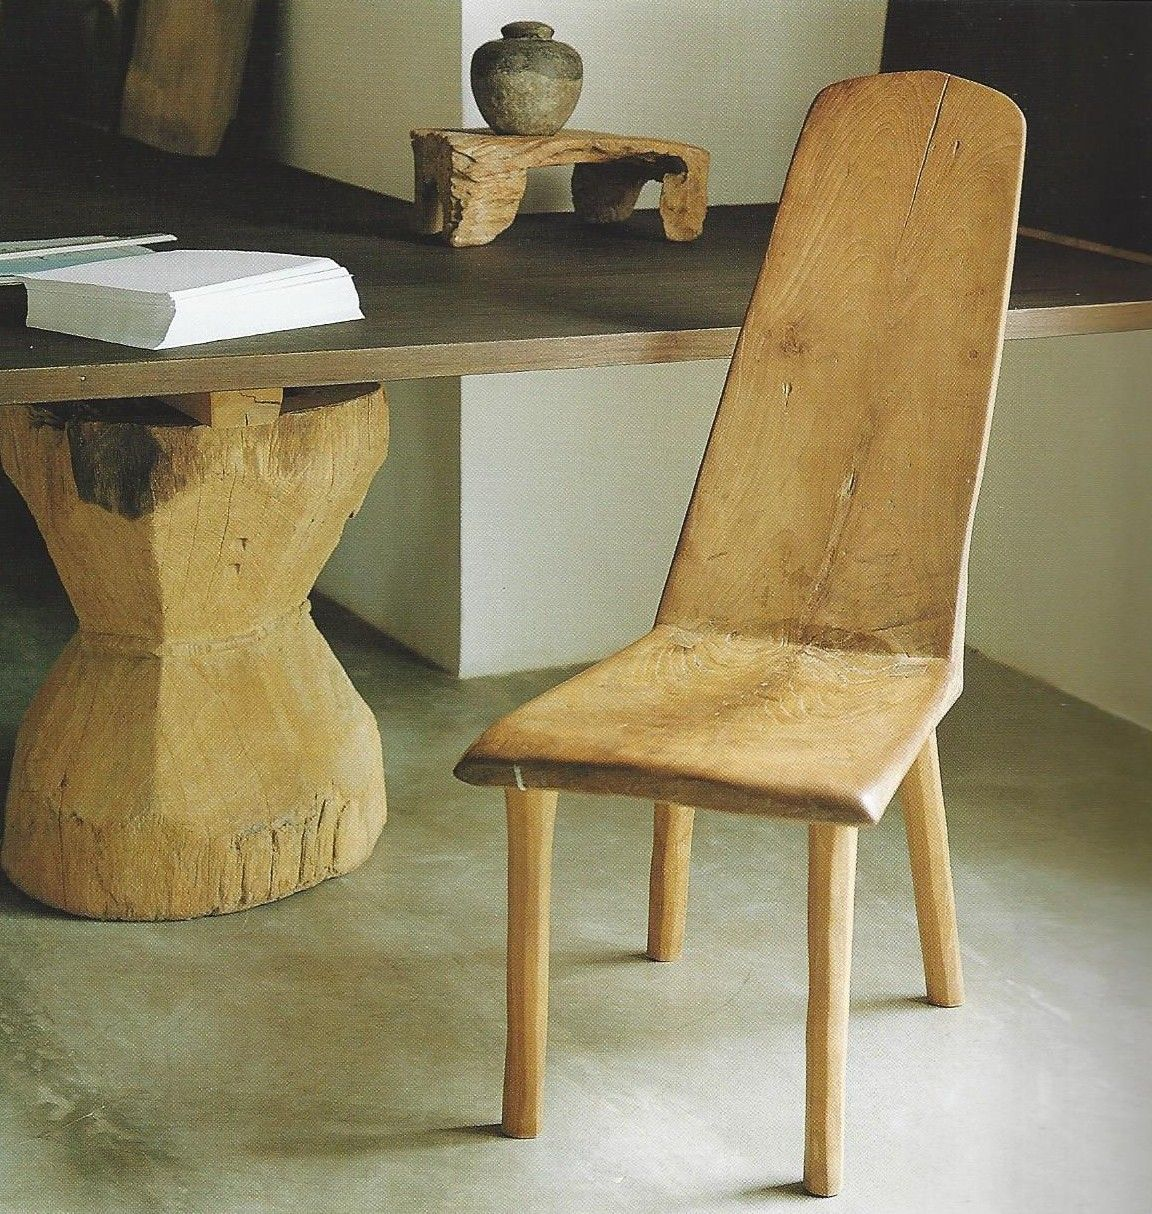 african birthing chair desk argos jerome abel seguin natural decor inredning hus trä